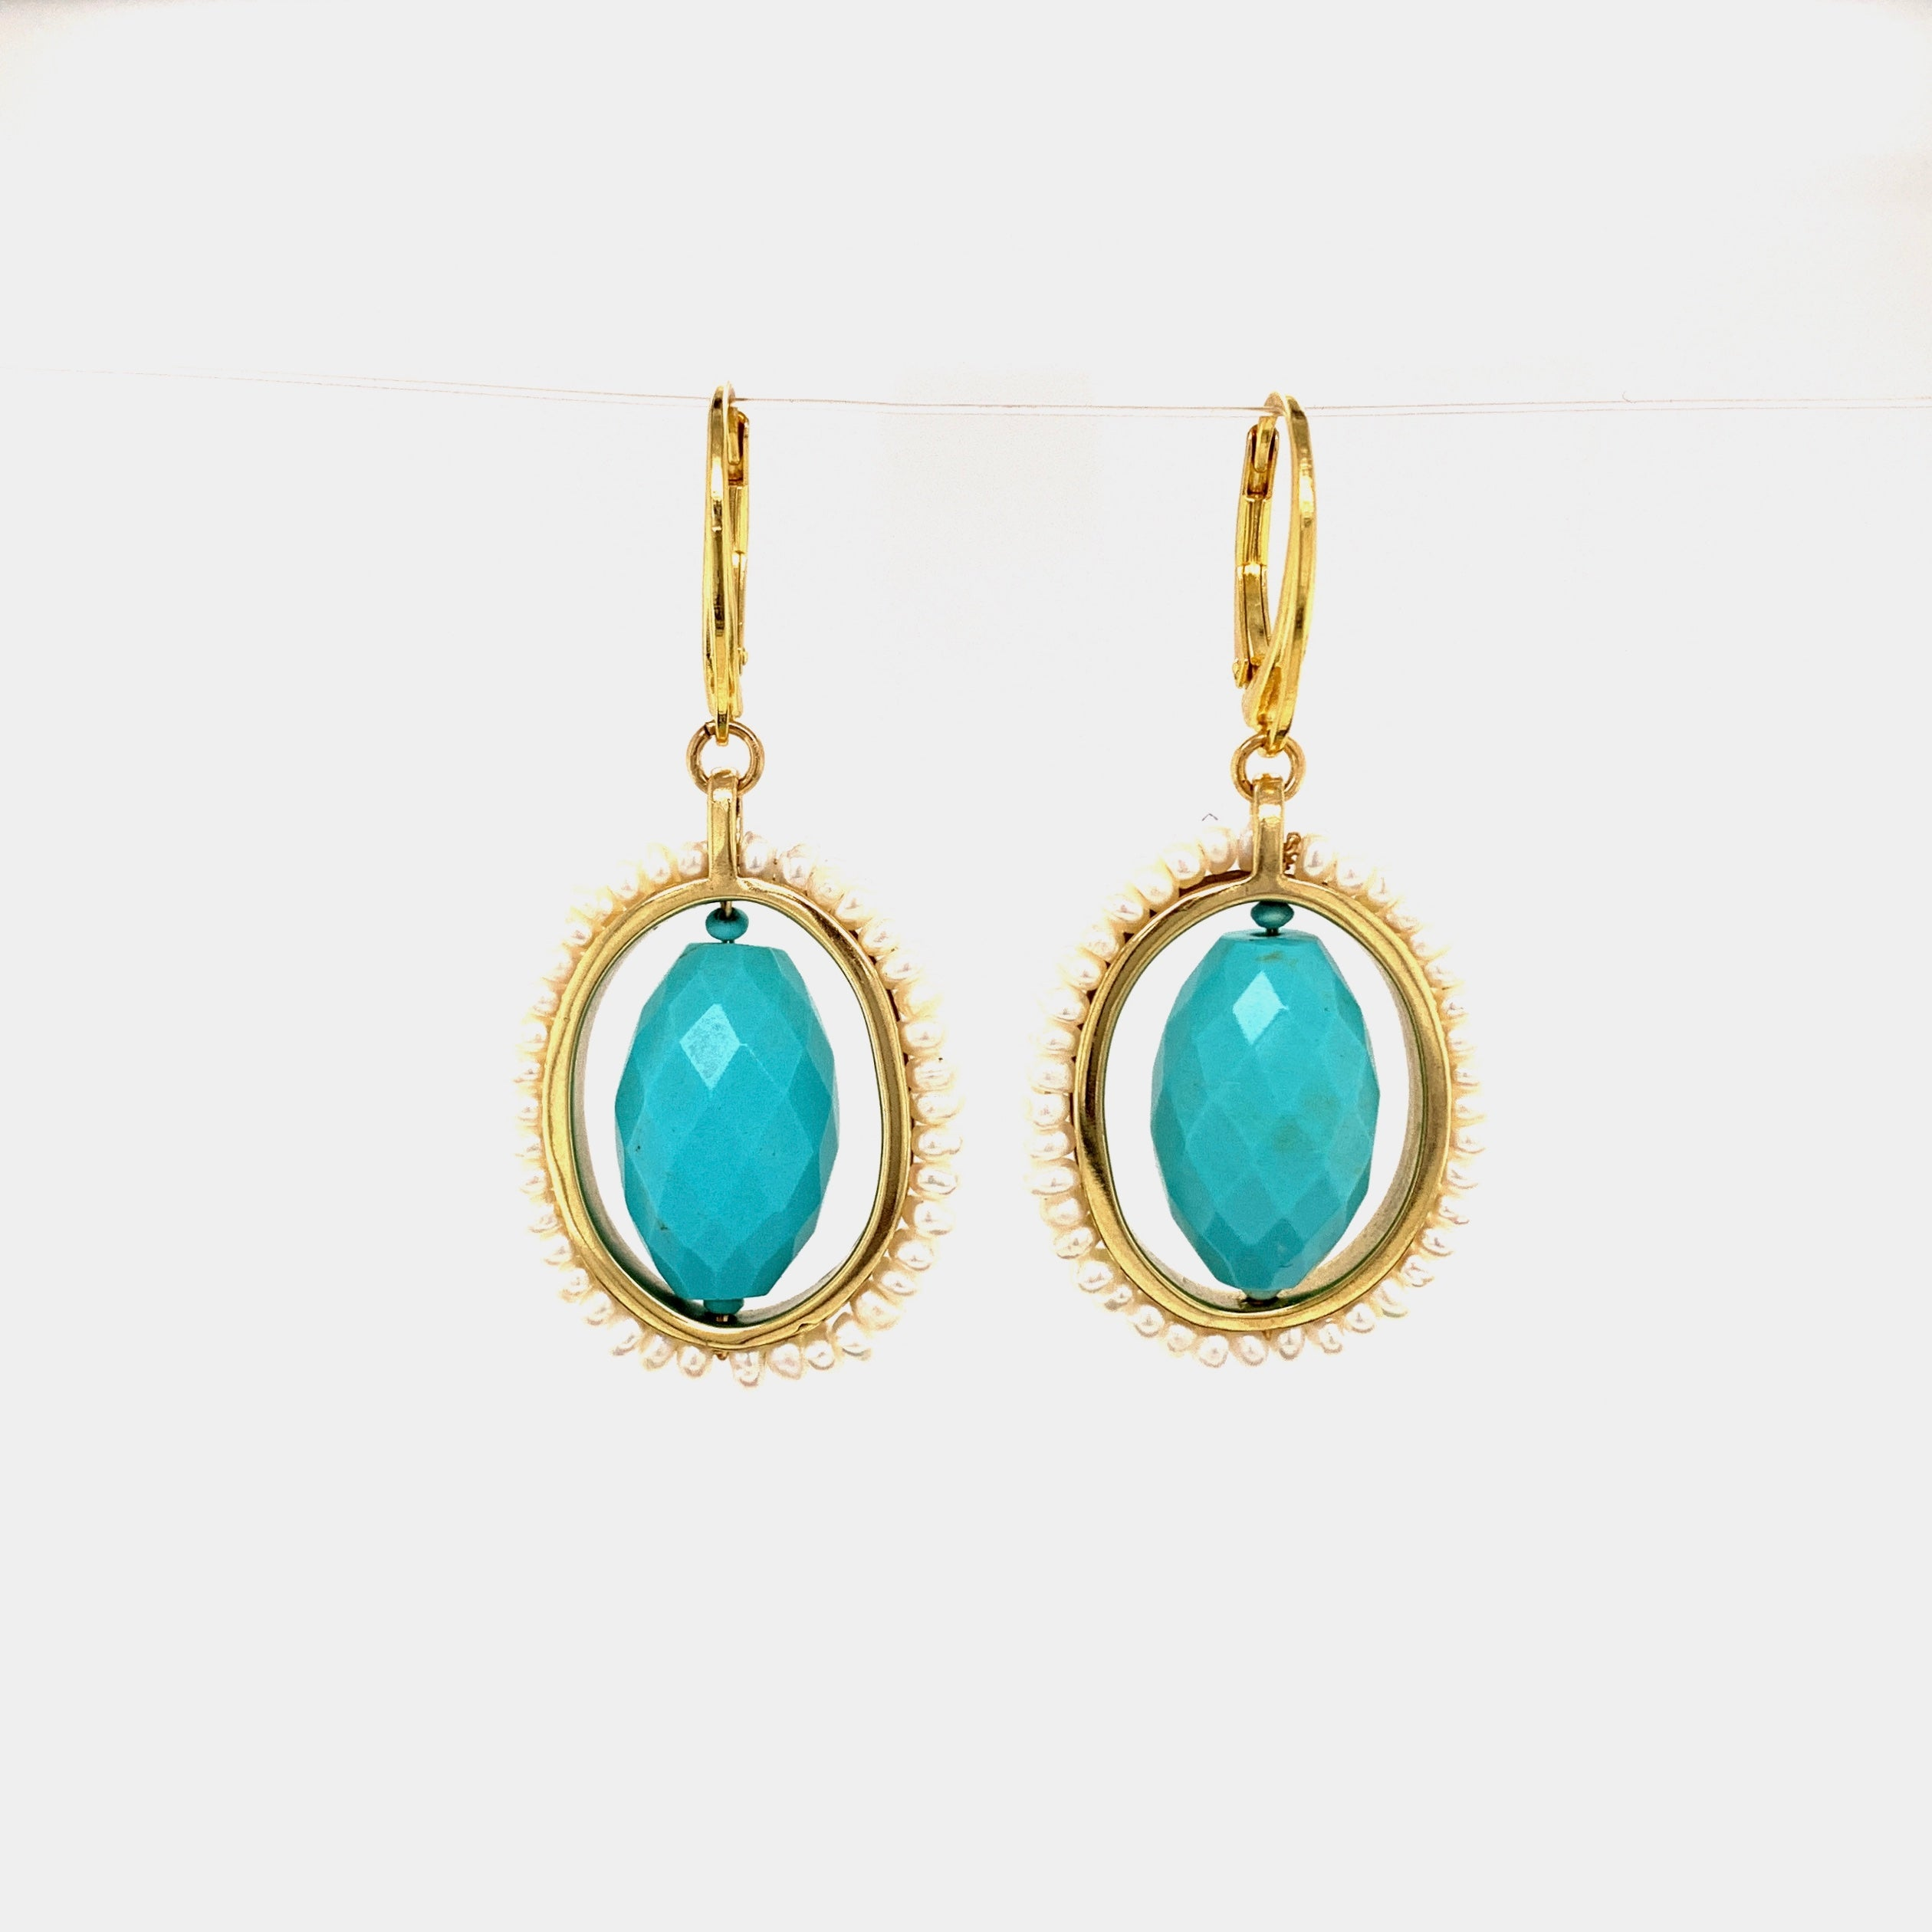 HEIRLOOM EARRINGS // TURQUOISE // PEARL